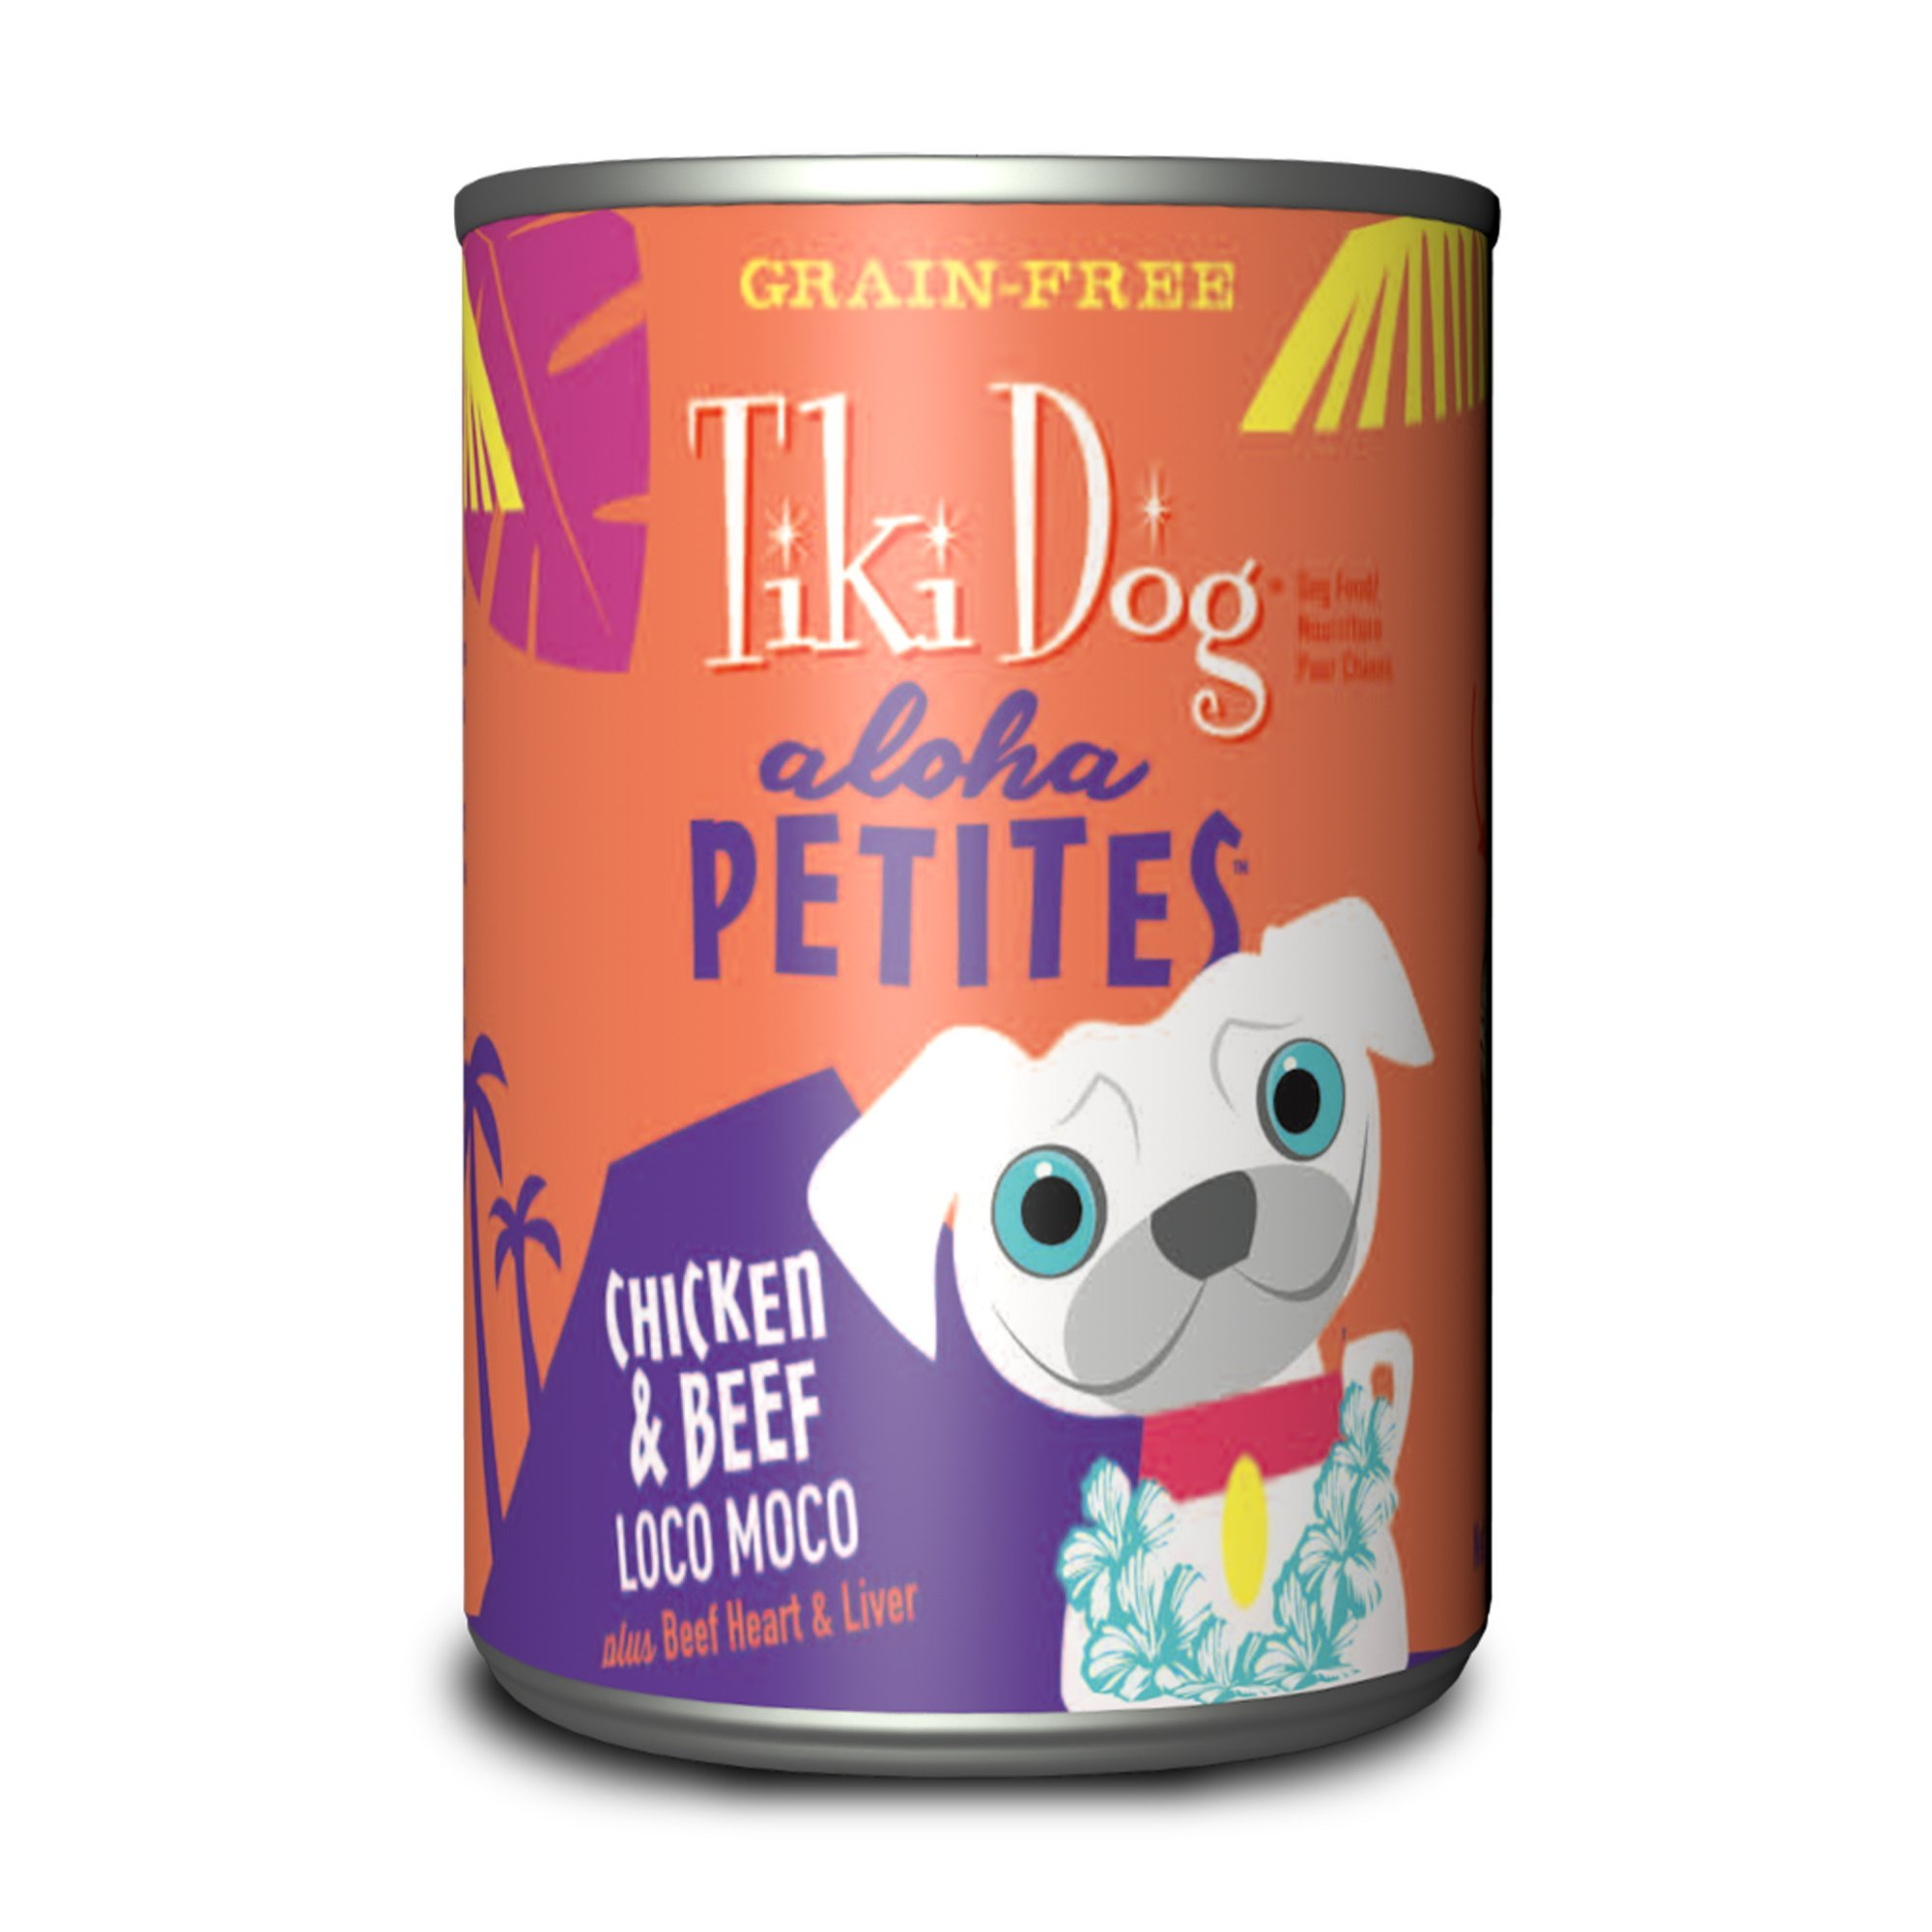 Tiki Dog Aloha Petites Chicken & Beef Loco Moco Wet Dog Food, 9 oz., Case of 12